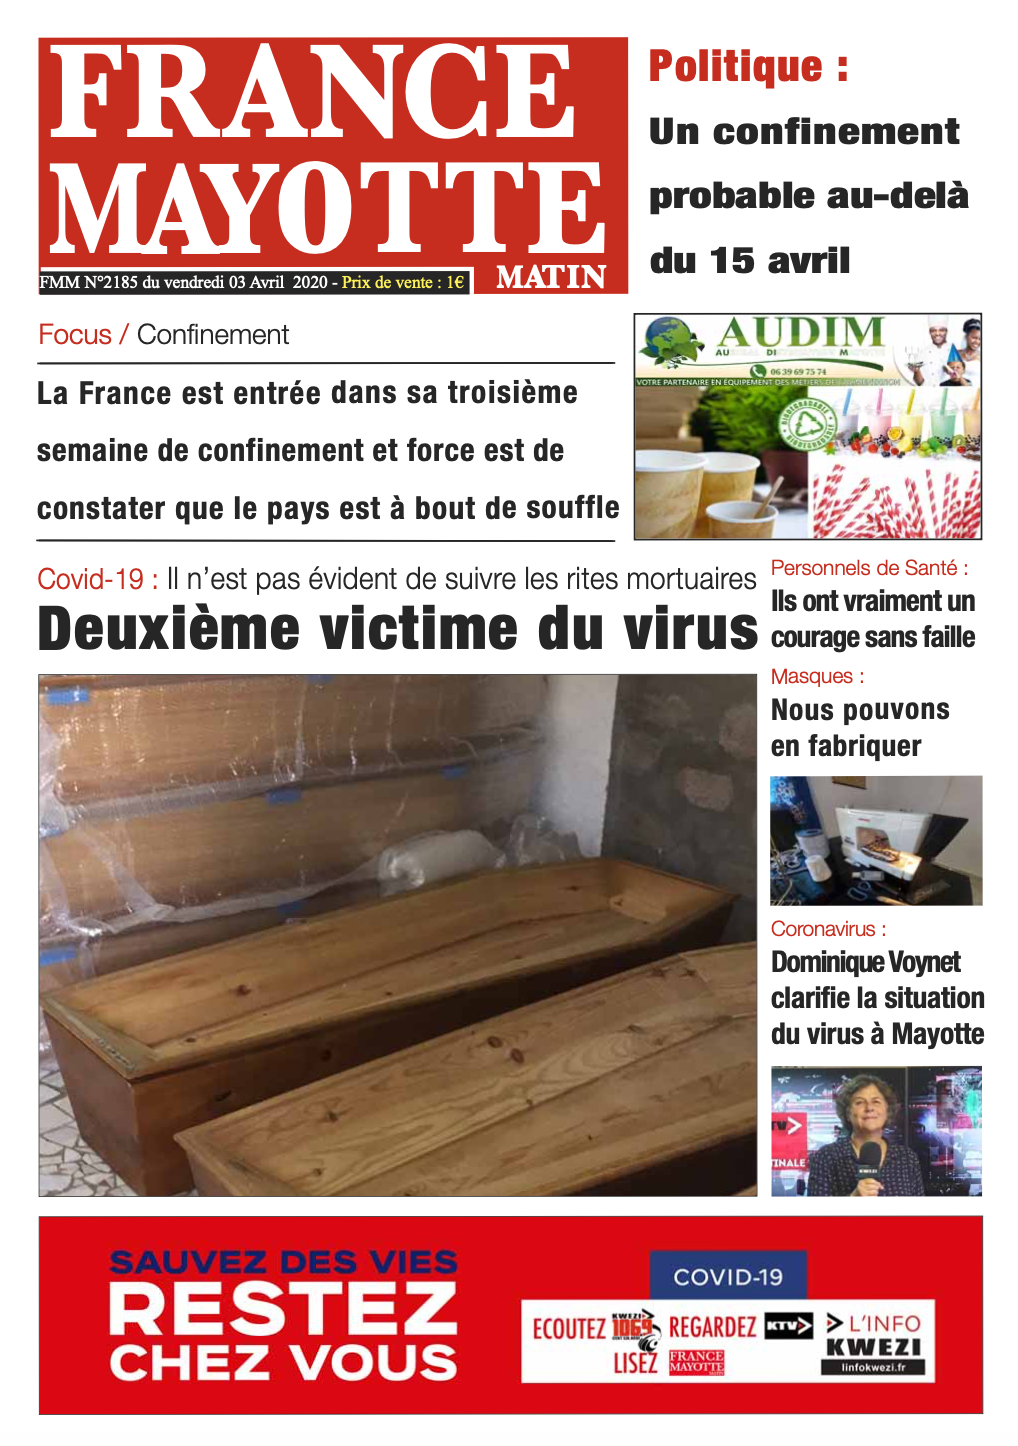 France Mayotte Vendredi 3 avril 2020